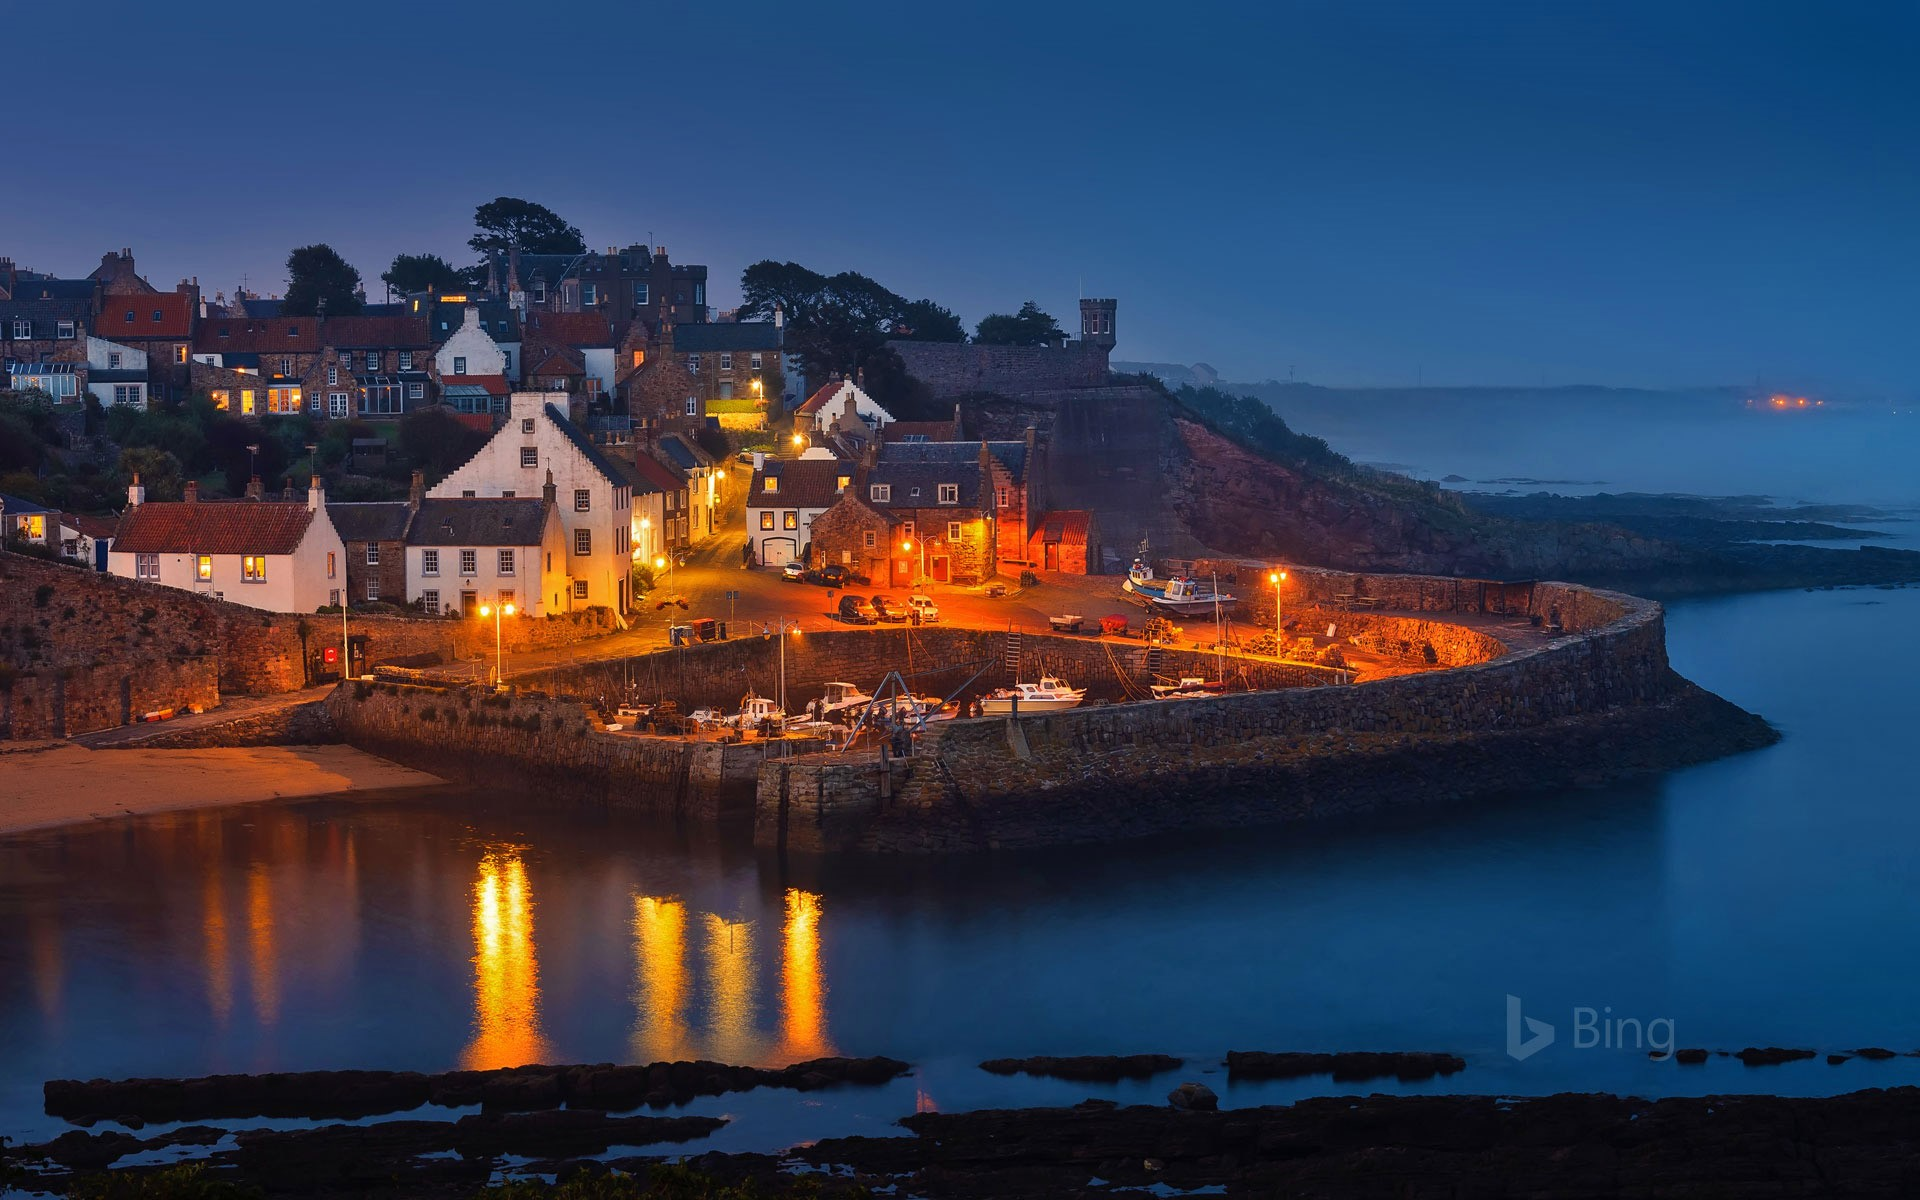 Crail Harbour in the East Neuk of Fife, Scotland